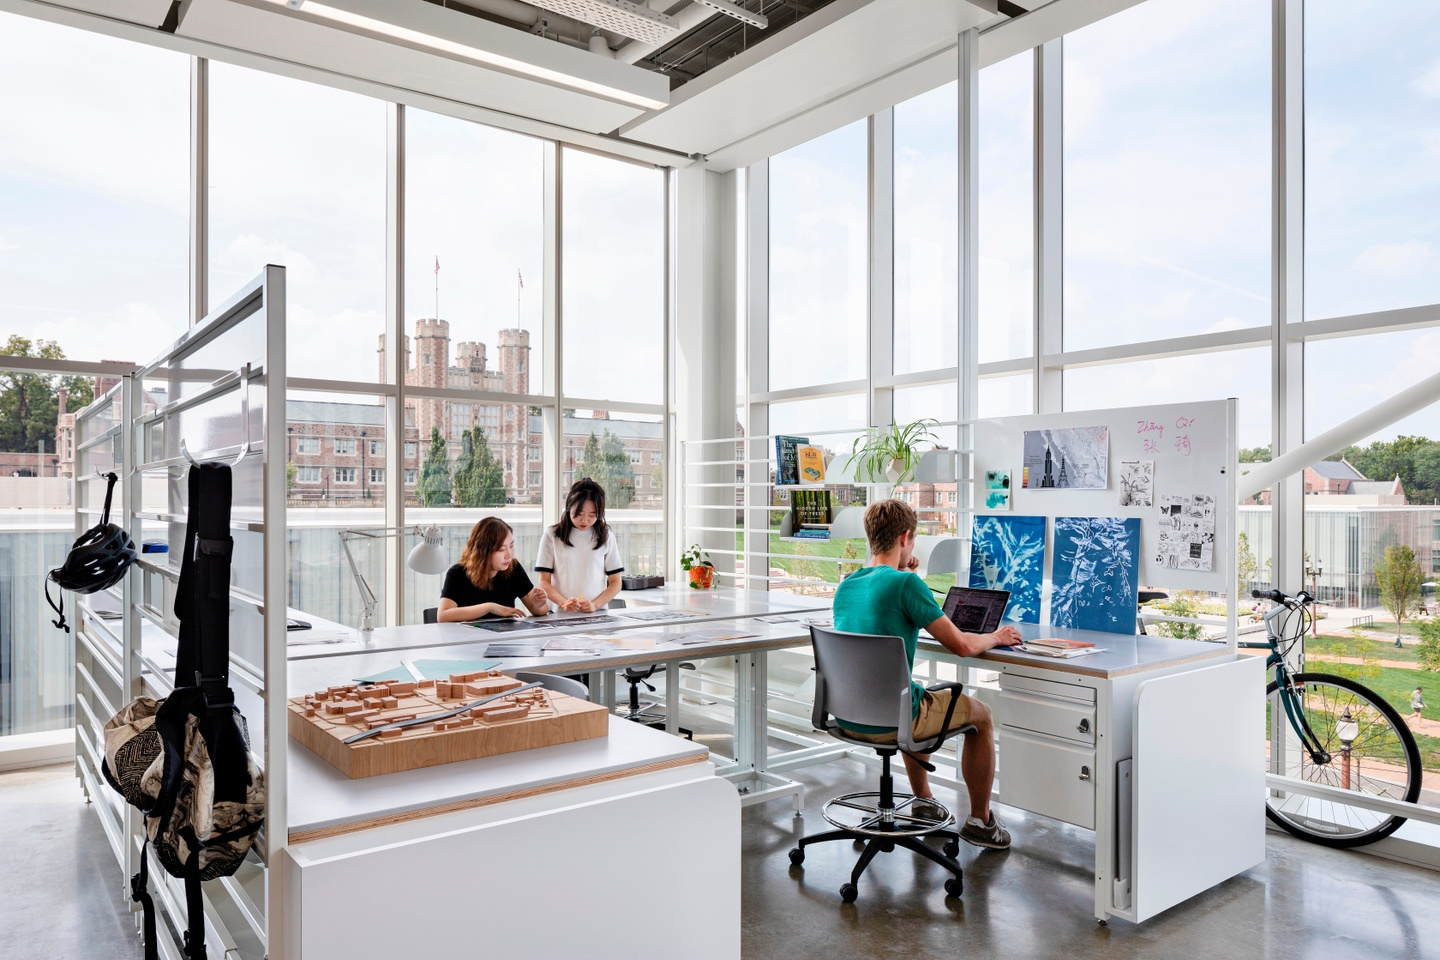 Three people work on their laptops at a modular, semi-private desk space to the backdrop of Brookings Hall, seen through the window wall.